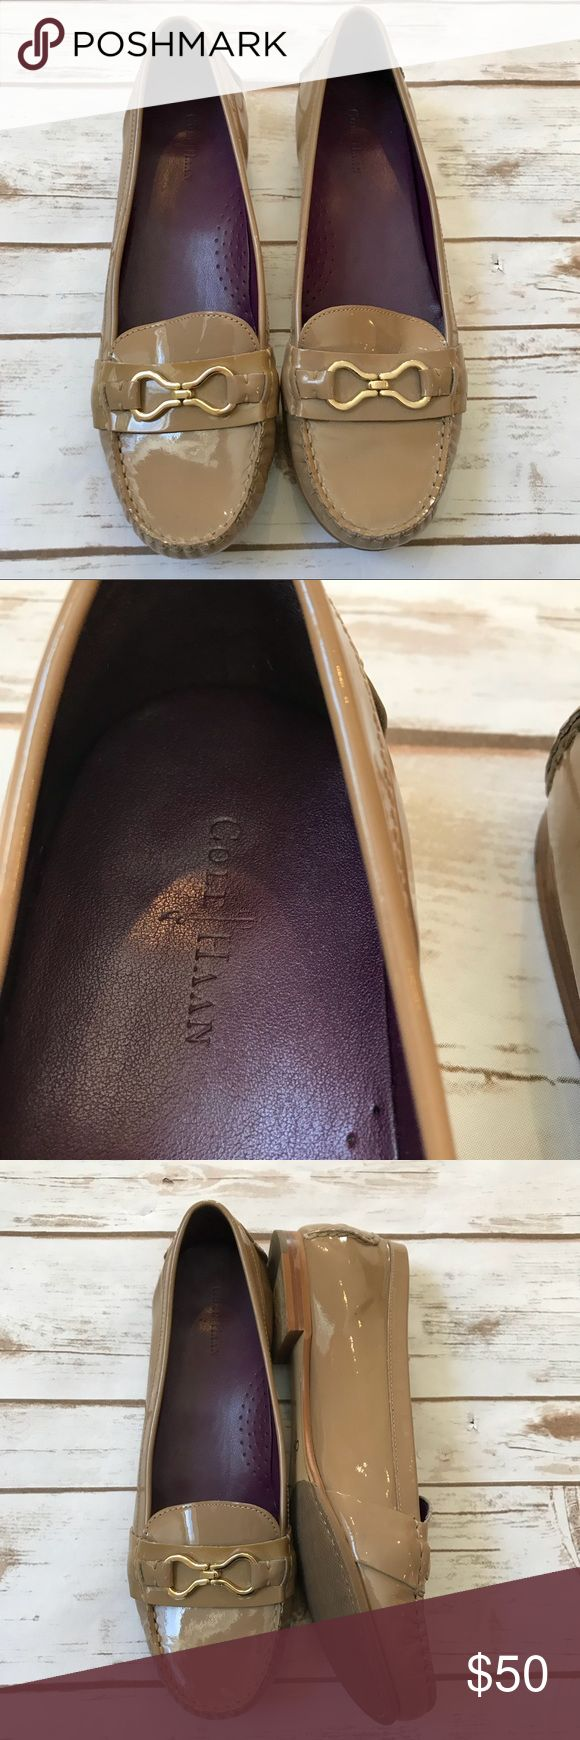 Cole Haan Marlee Infinity patent leather moccasin Cole Haan Marlee Infinity Moc II nude patent leather moccasins. Women's shoe size 11. Excellent pre-owned condition. No trades, offers welcome! Cole Haan Shoes Flats & Loafers